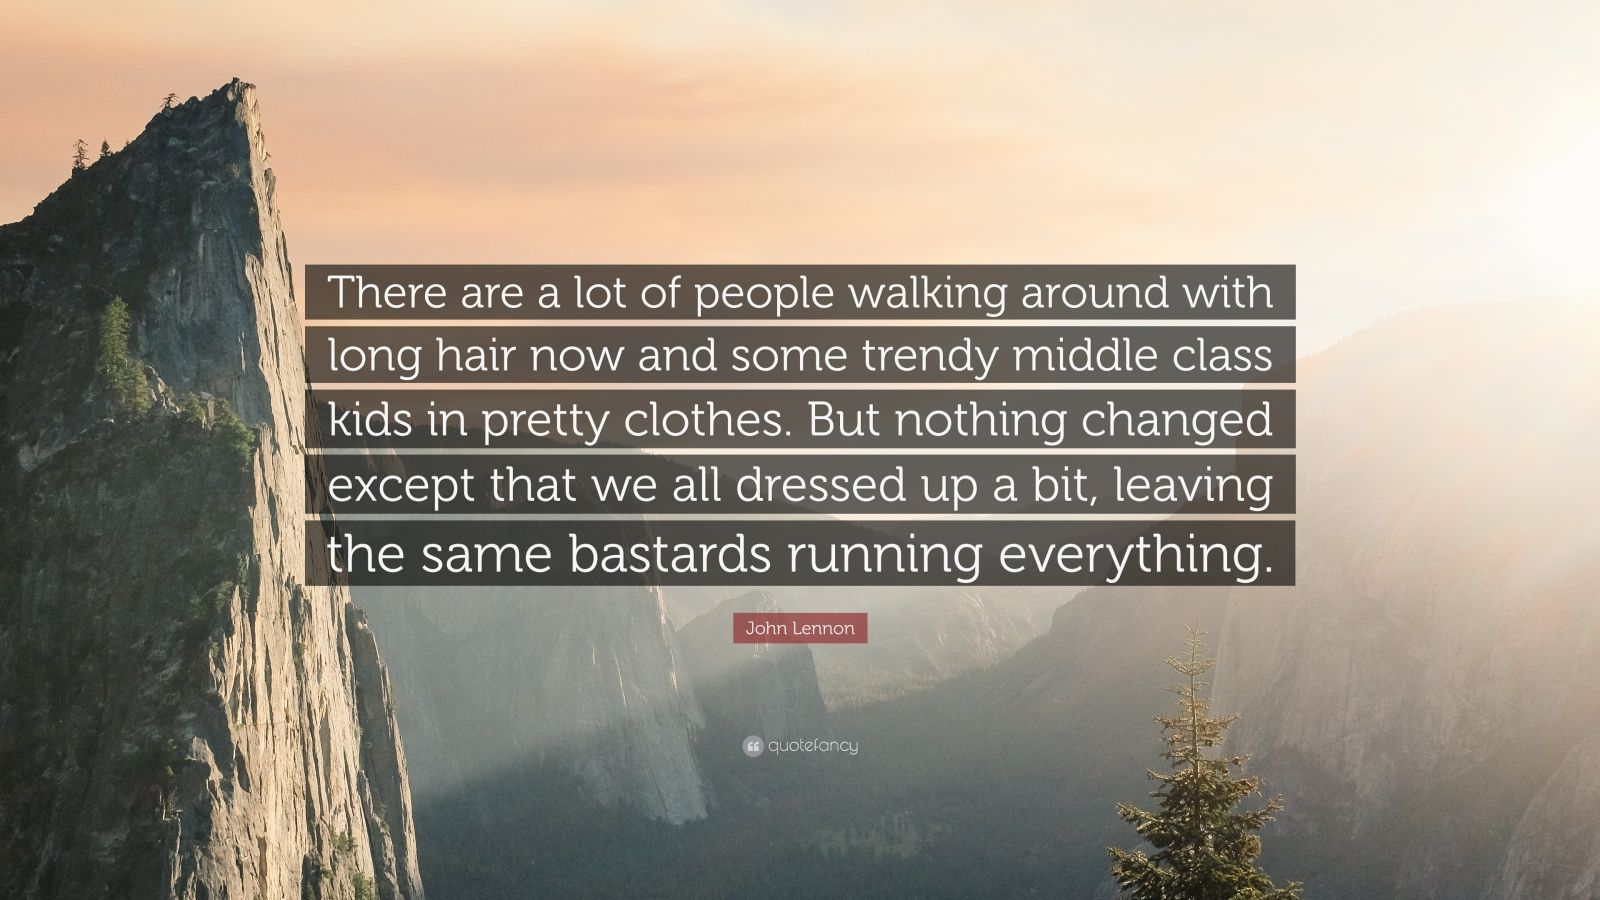 """John Lennon Quote: """"There are a lot of people walking around with long hair now and some trendy middle class kids in pretty clothes. But nothing changed except that we all dressed up a bit, leaving the same bastards running everything."""""""